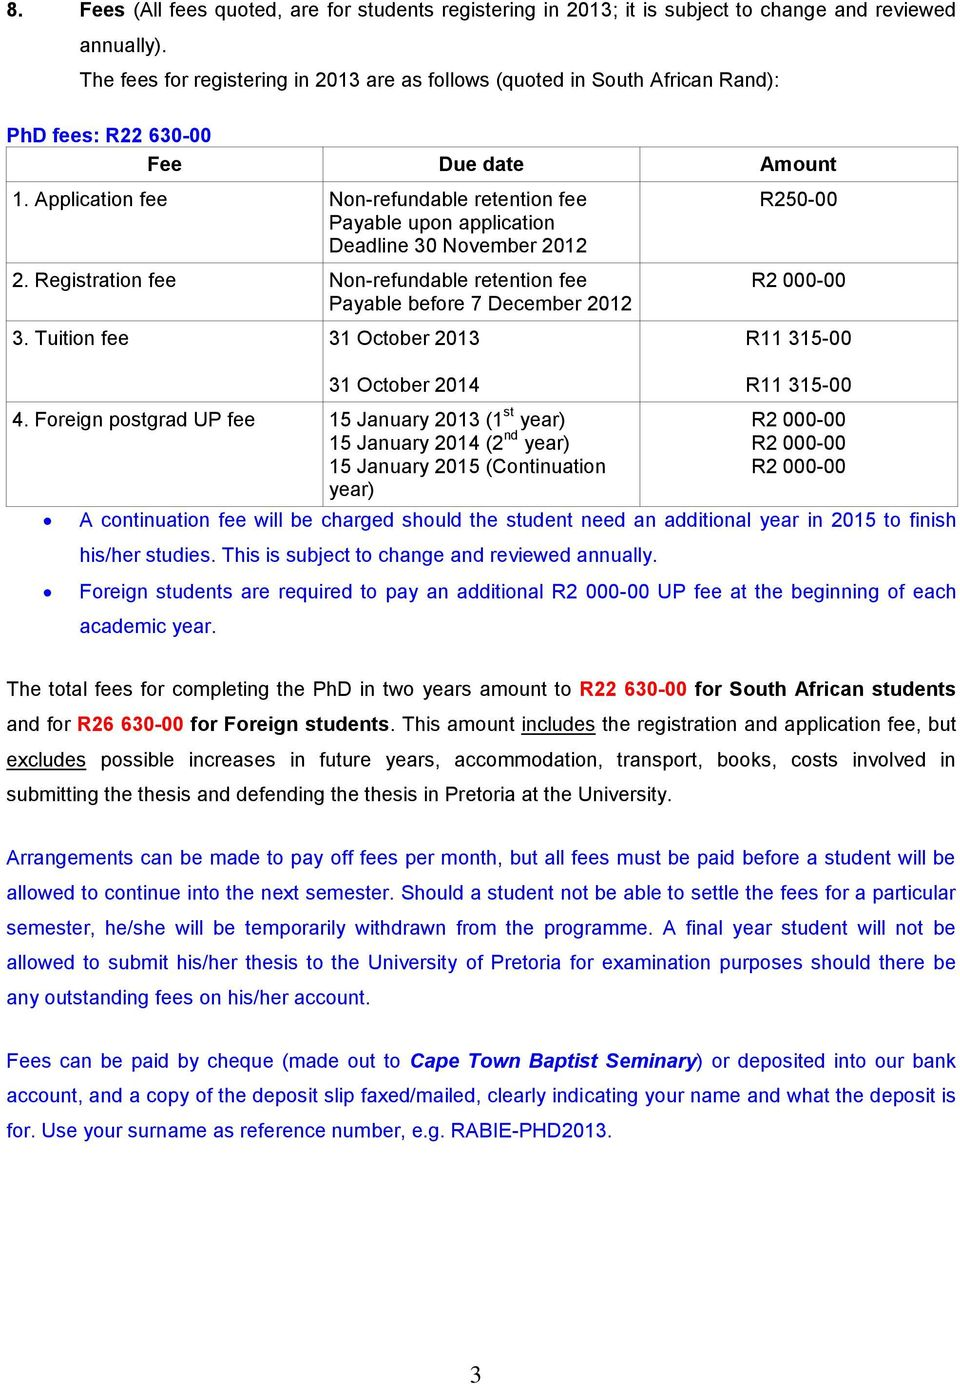 Application fee Non-refundable retention fee Payable upon application Deadline 30 November 2012 2. Registration fee Non-refundable retention fee Payable before 7 December 2012 3.